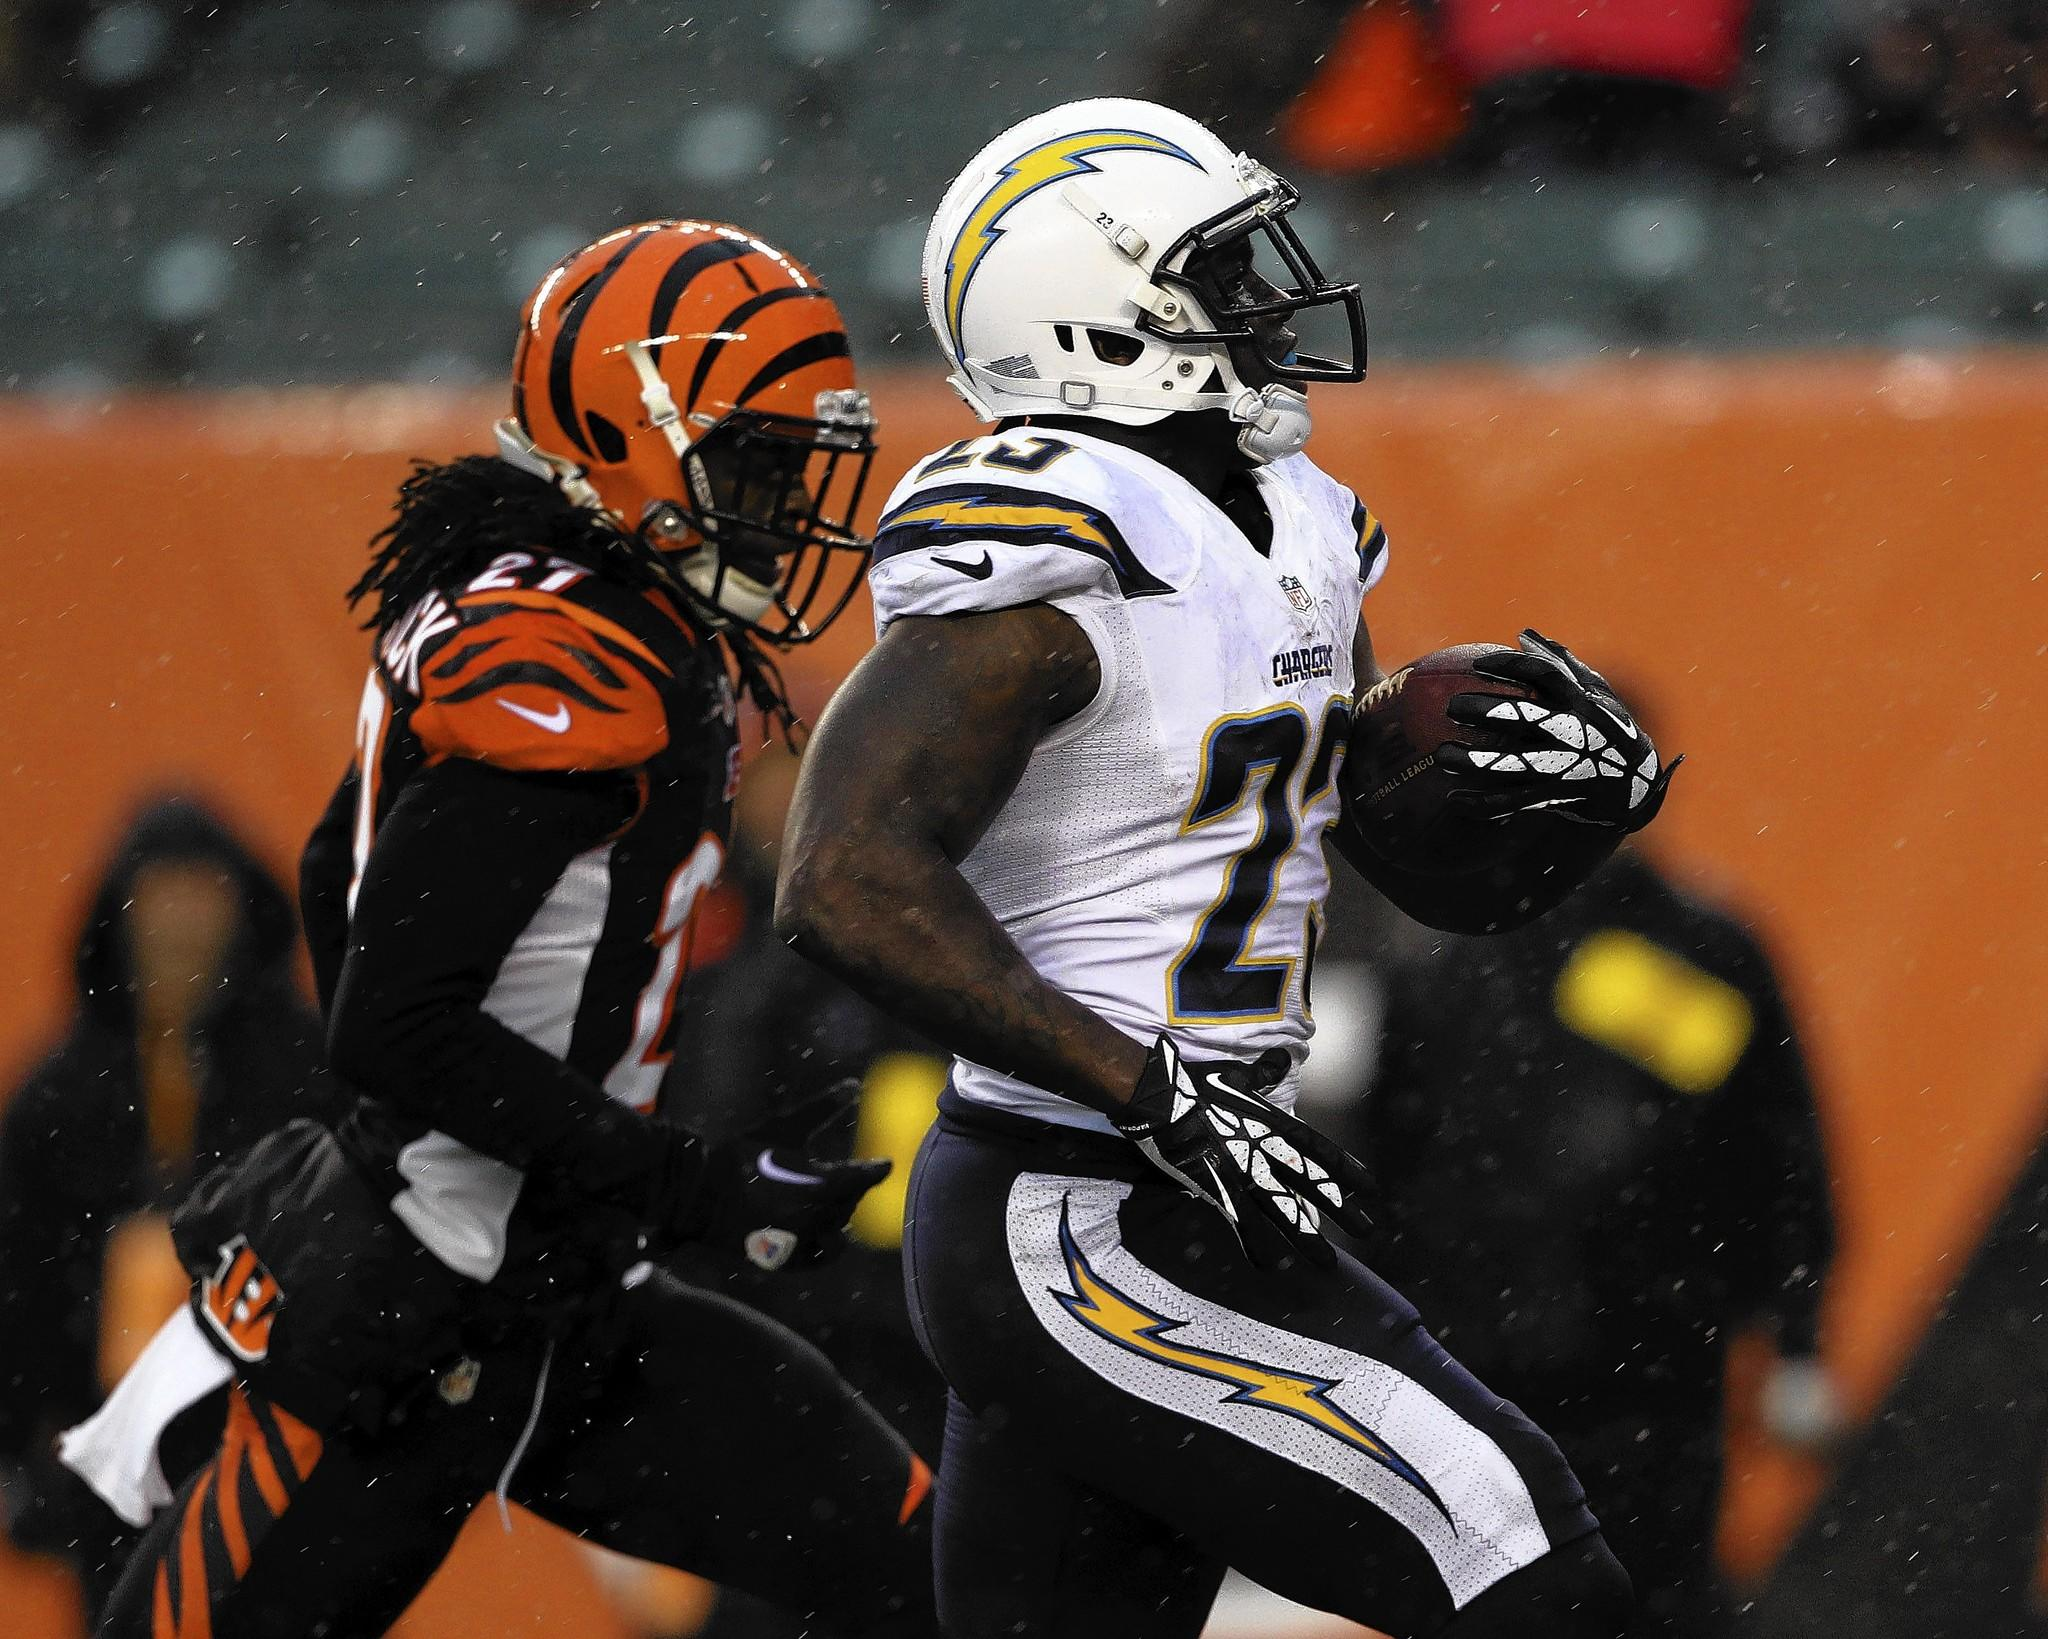 San Diego Chargers running back Ronnie Brown (23) runs for a touchdown in the fourth quarter with Cincinnati Bengals cornerback Dre Kirkpatrick giving chase.